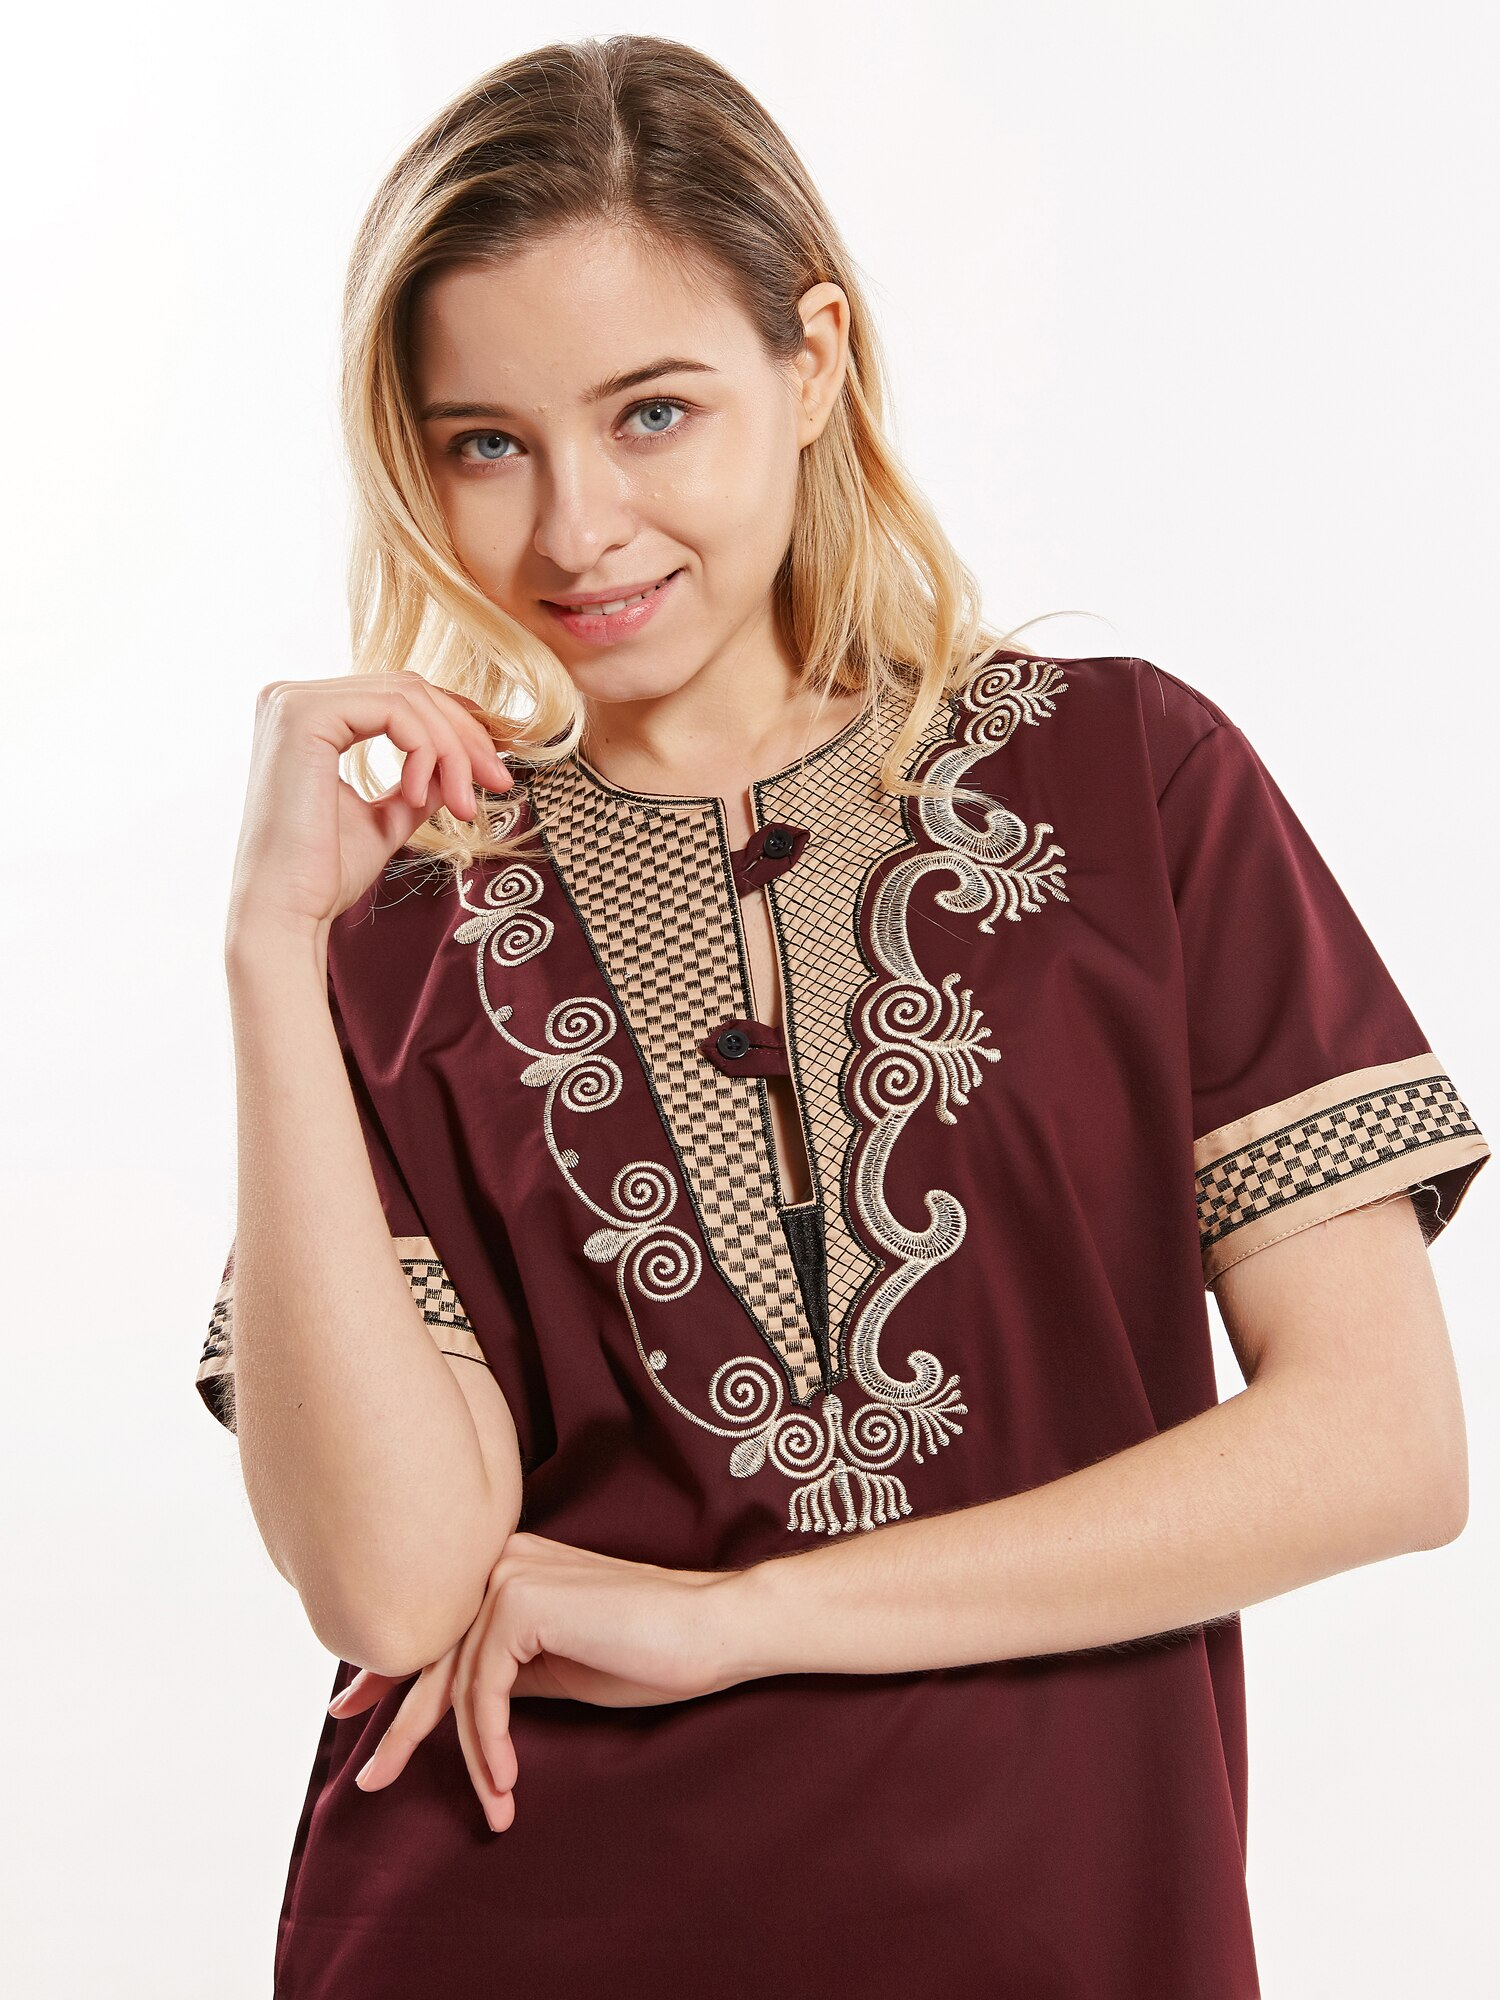 Unisex Dashikiage muslim shirt Embroidered Tailored islamic clothing jelaba homme	 2019